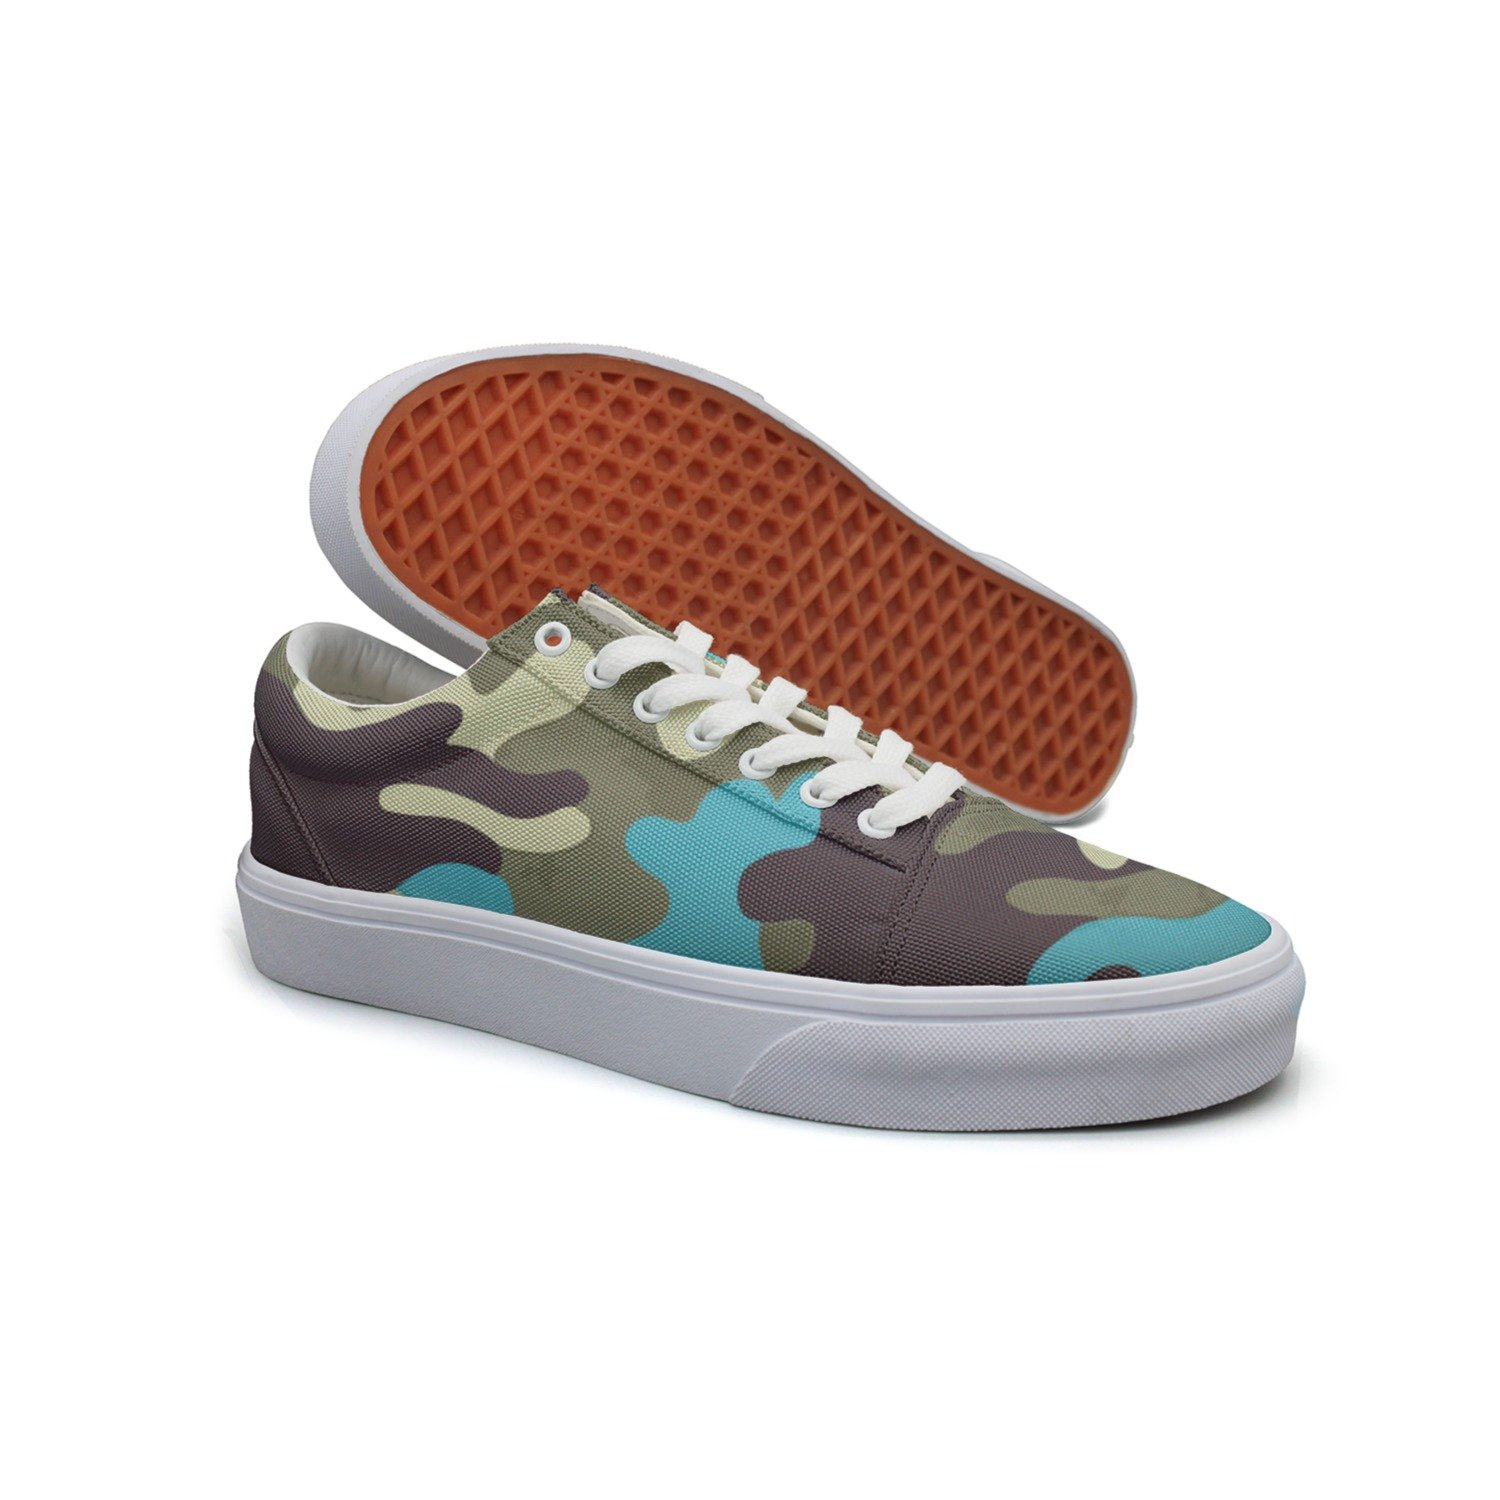 Ouxioaz Womens Skateboarding Shoes Canvas Colorful Camouflage Sport Sneaker